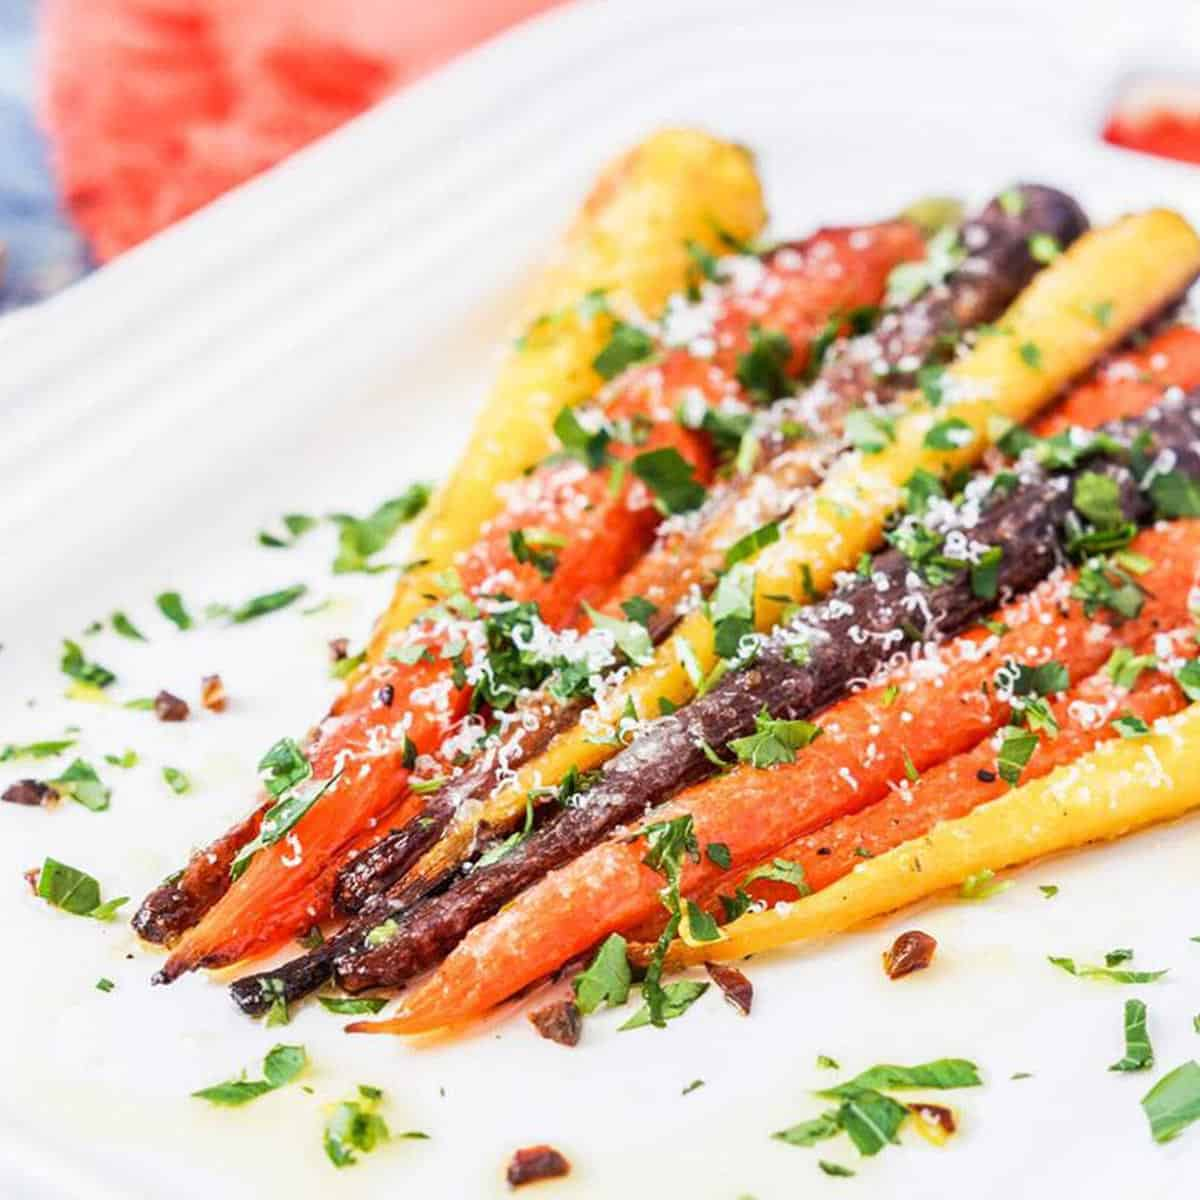 Garlic parmesan roasted carrots on a plate